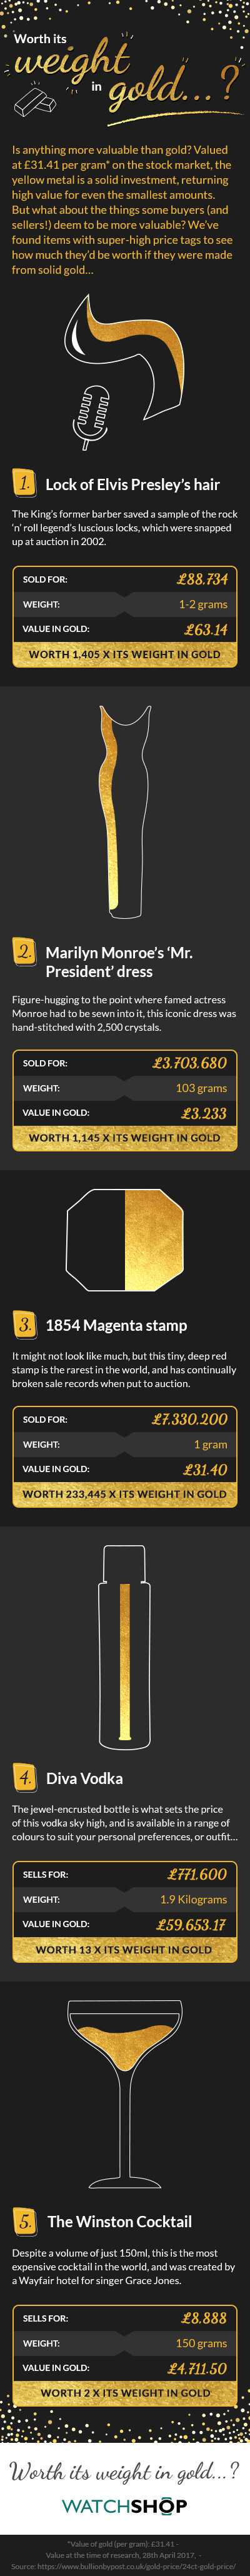 Worth its weight in gold…? infographic from Watchshop